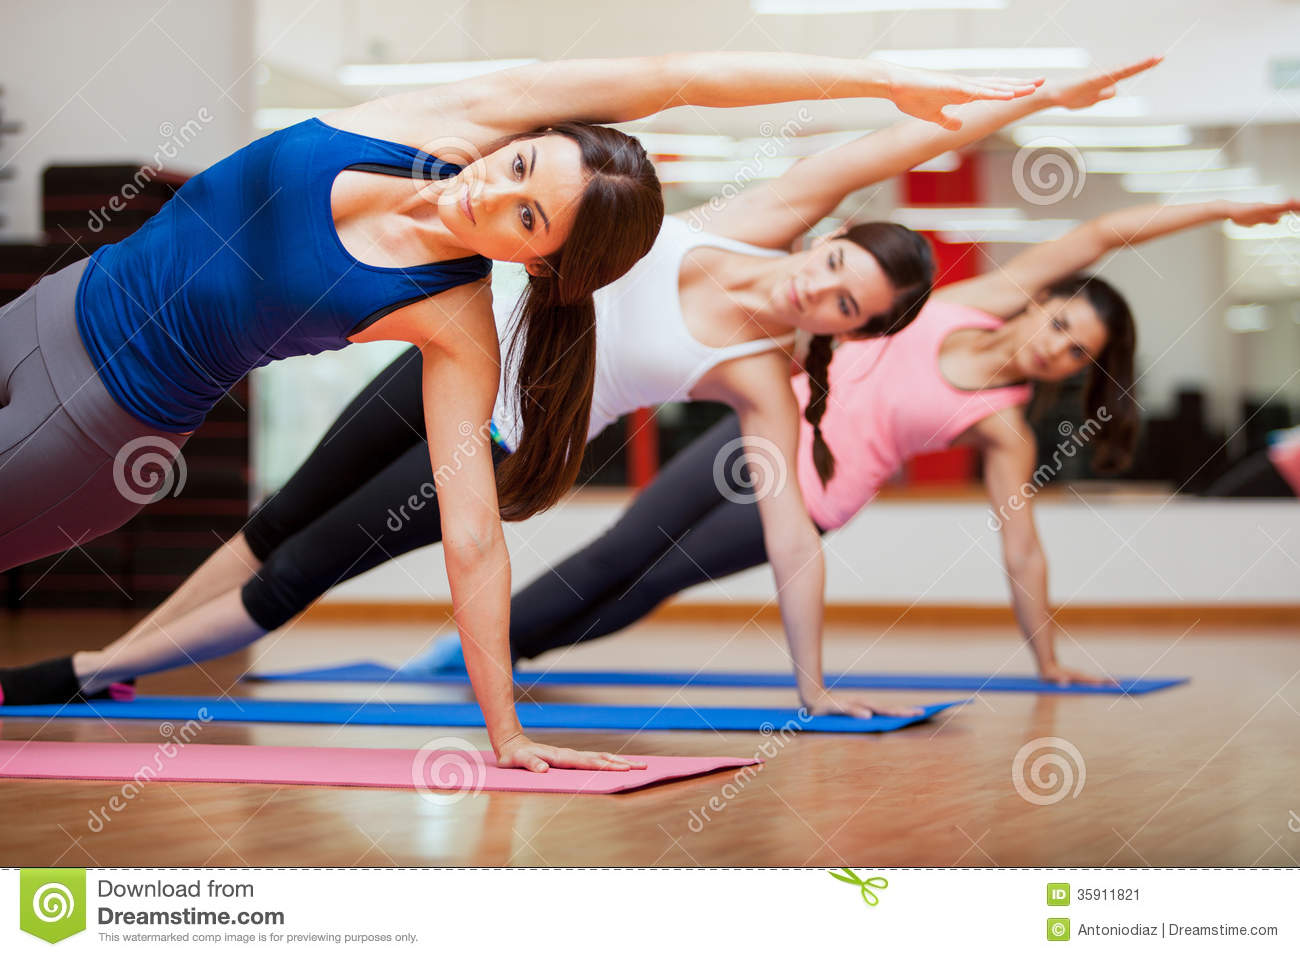 Doing A Side Plank For Yoga Class Beautiful Group Of Women Practicing The